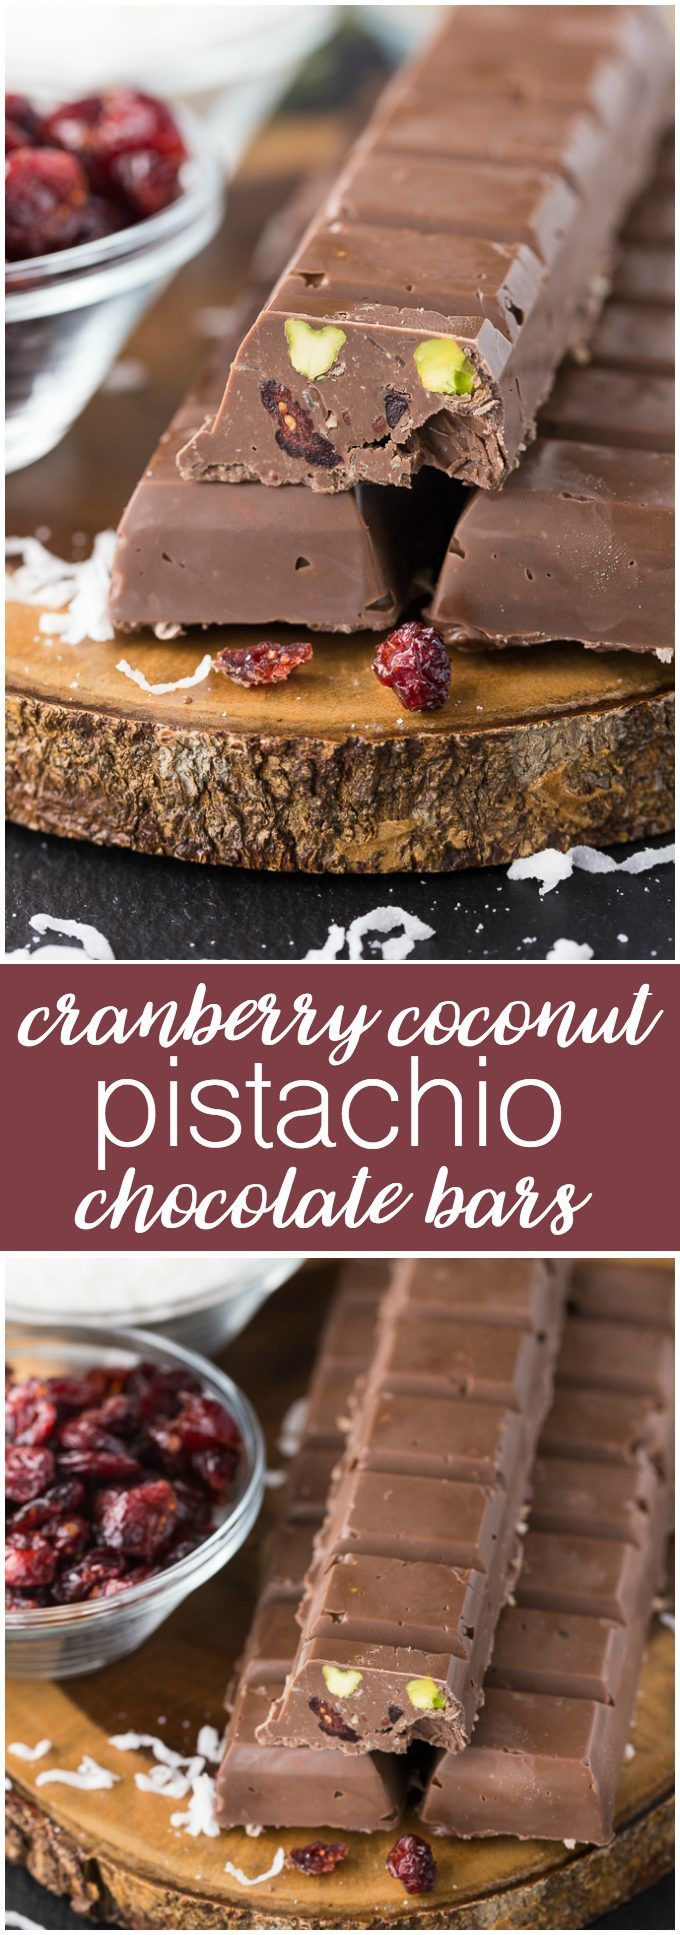 Cranberry Coconut Pistachio Chocolate Bars - Rich and festive homemade chocolate bars perfect for holiday gift giving!